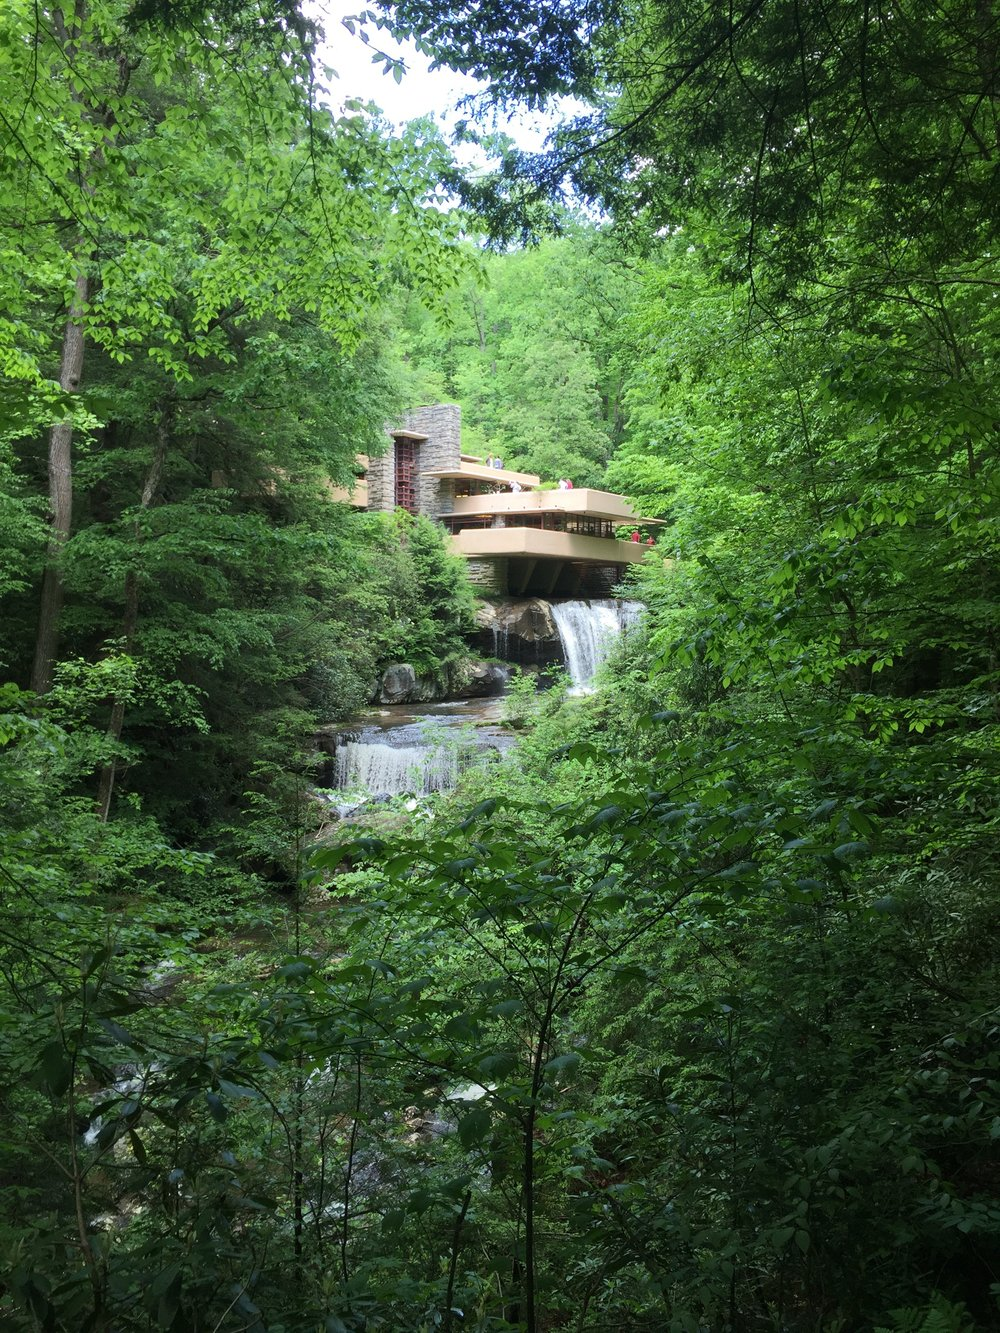 The famous view of Fallingwater